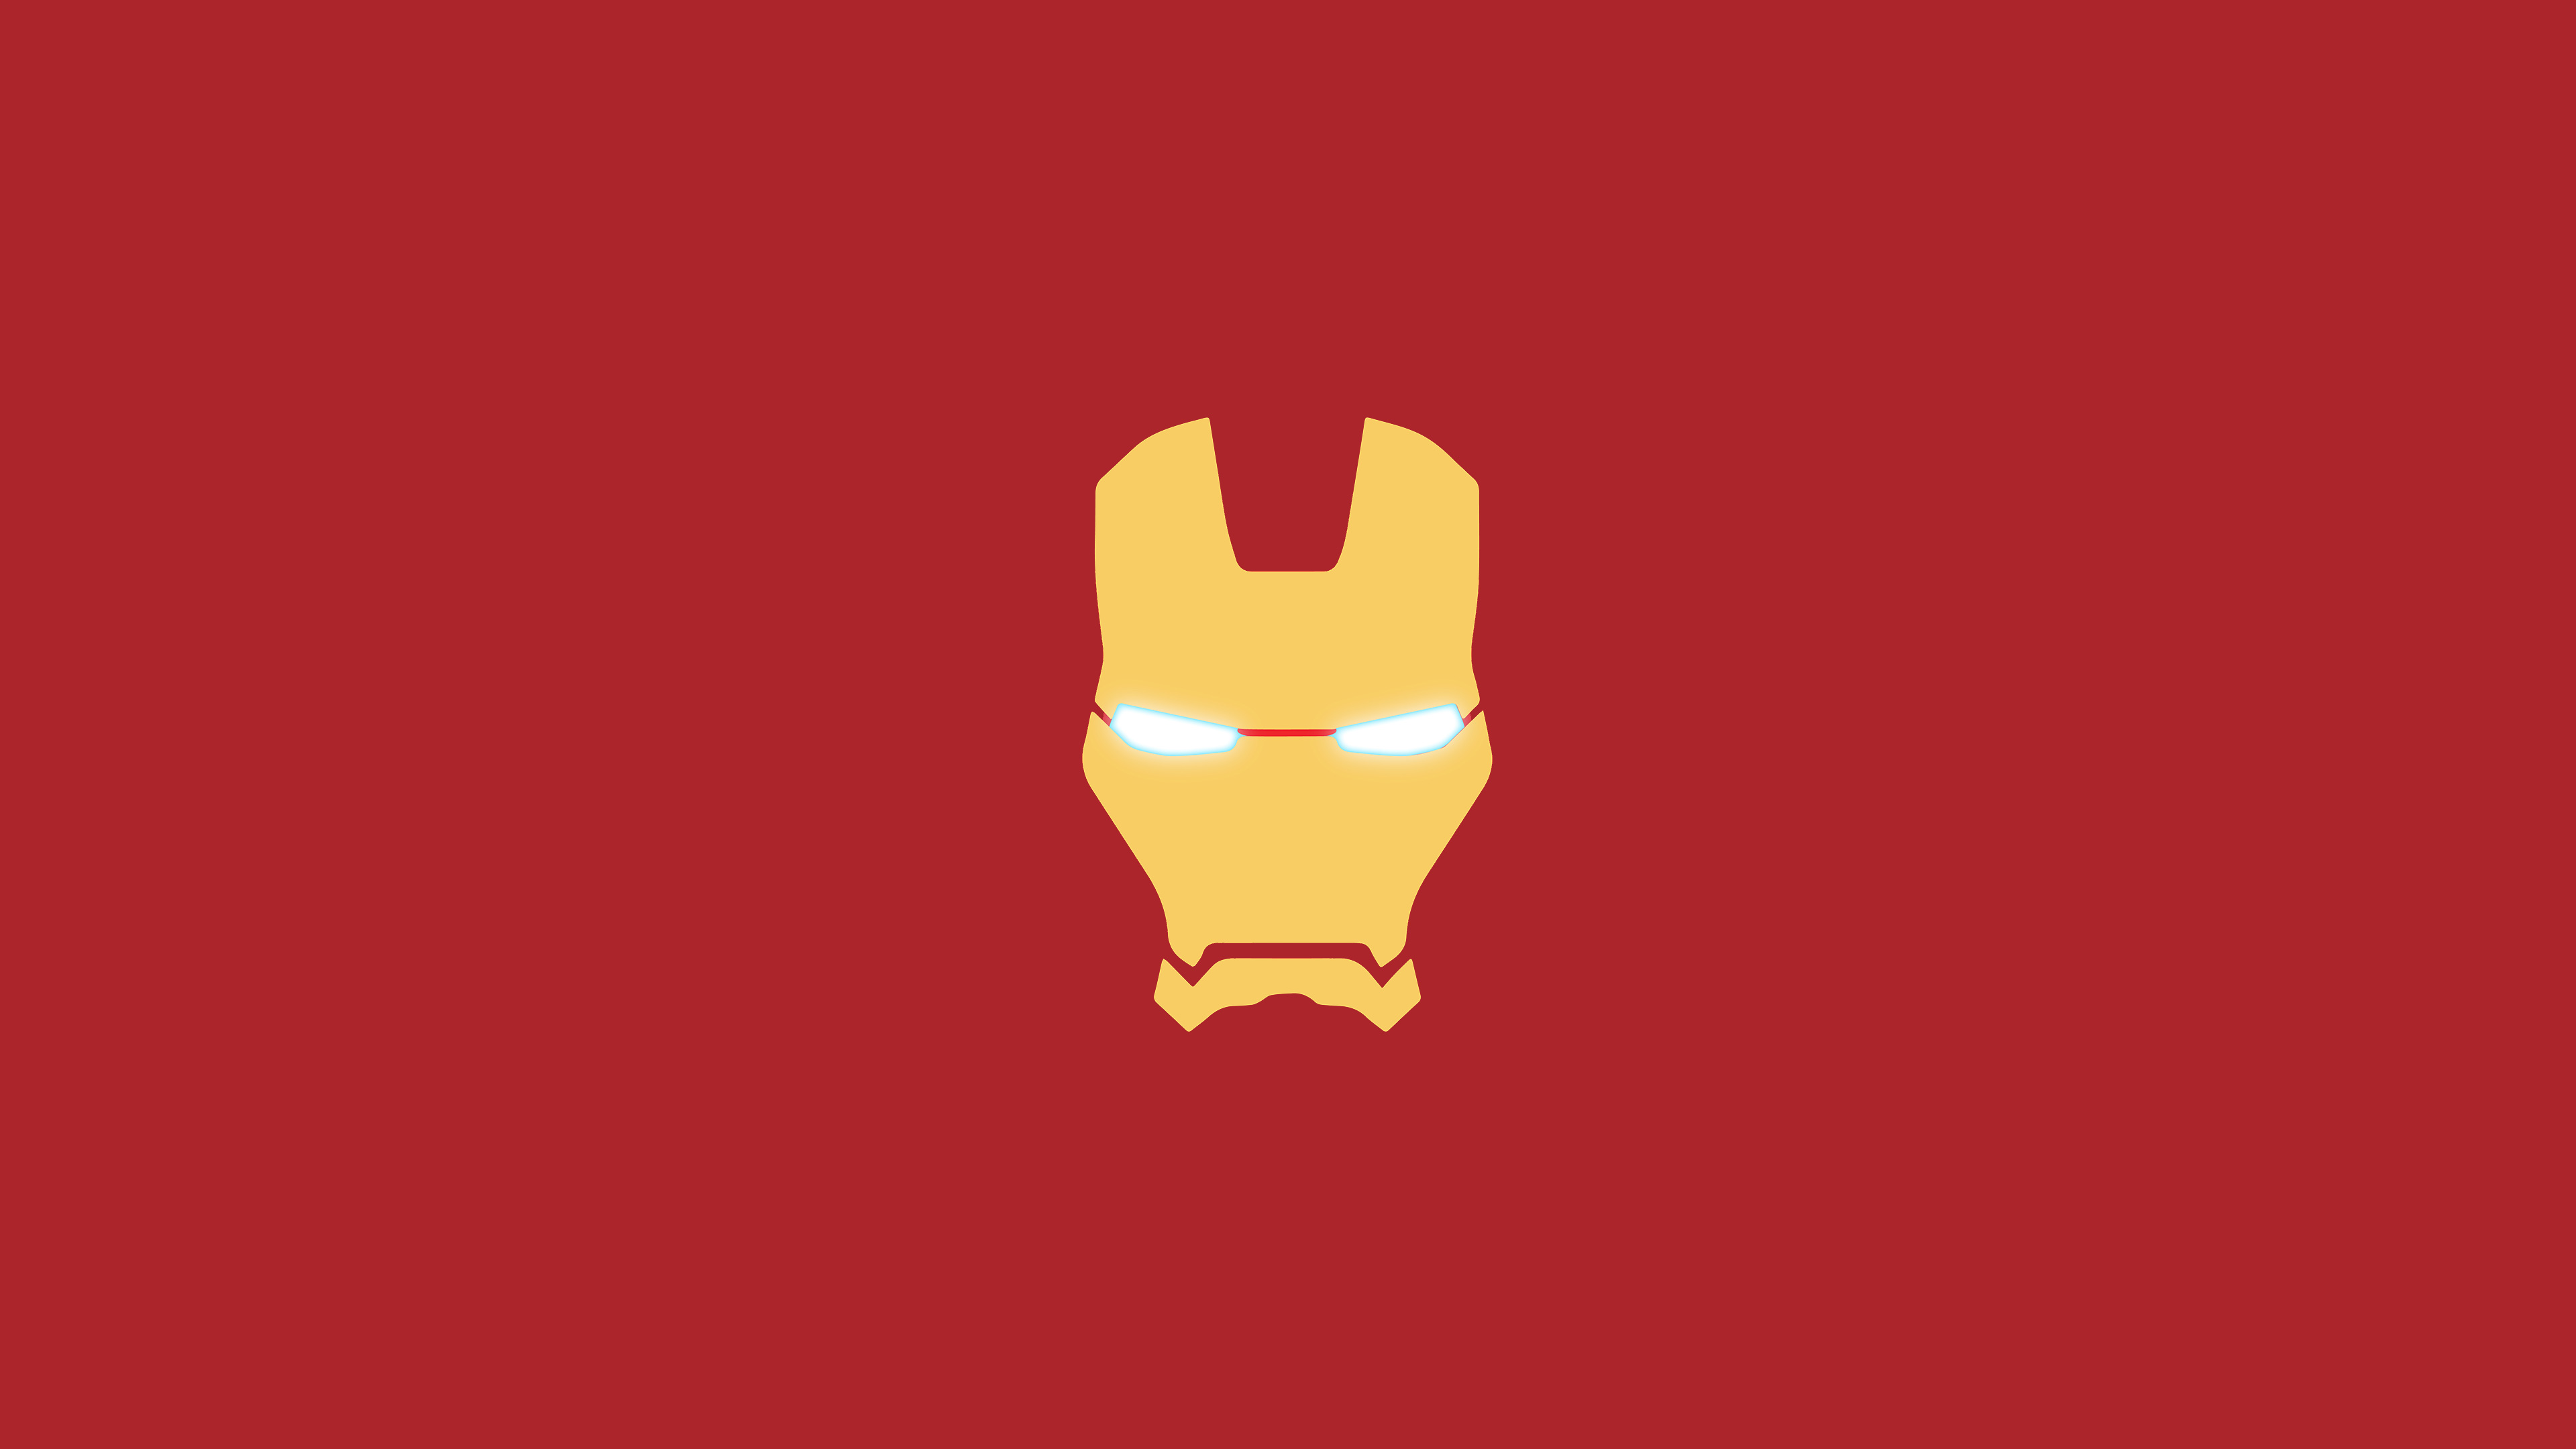 iron man mask minimal, hd logo, 4k wallpapers, images, backgrounds